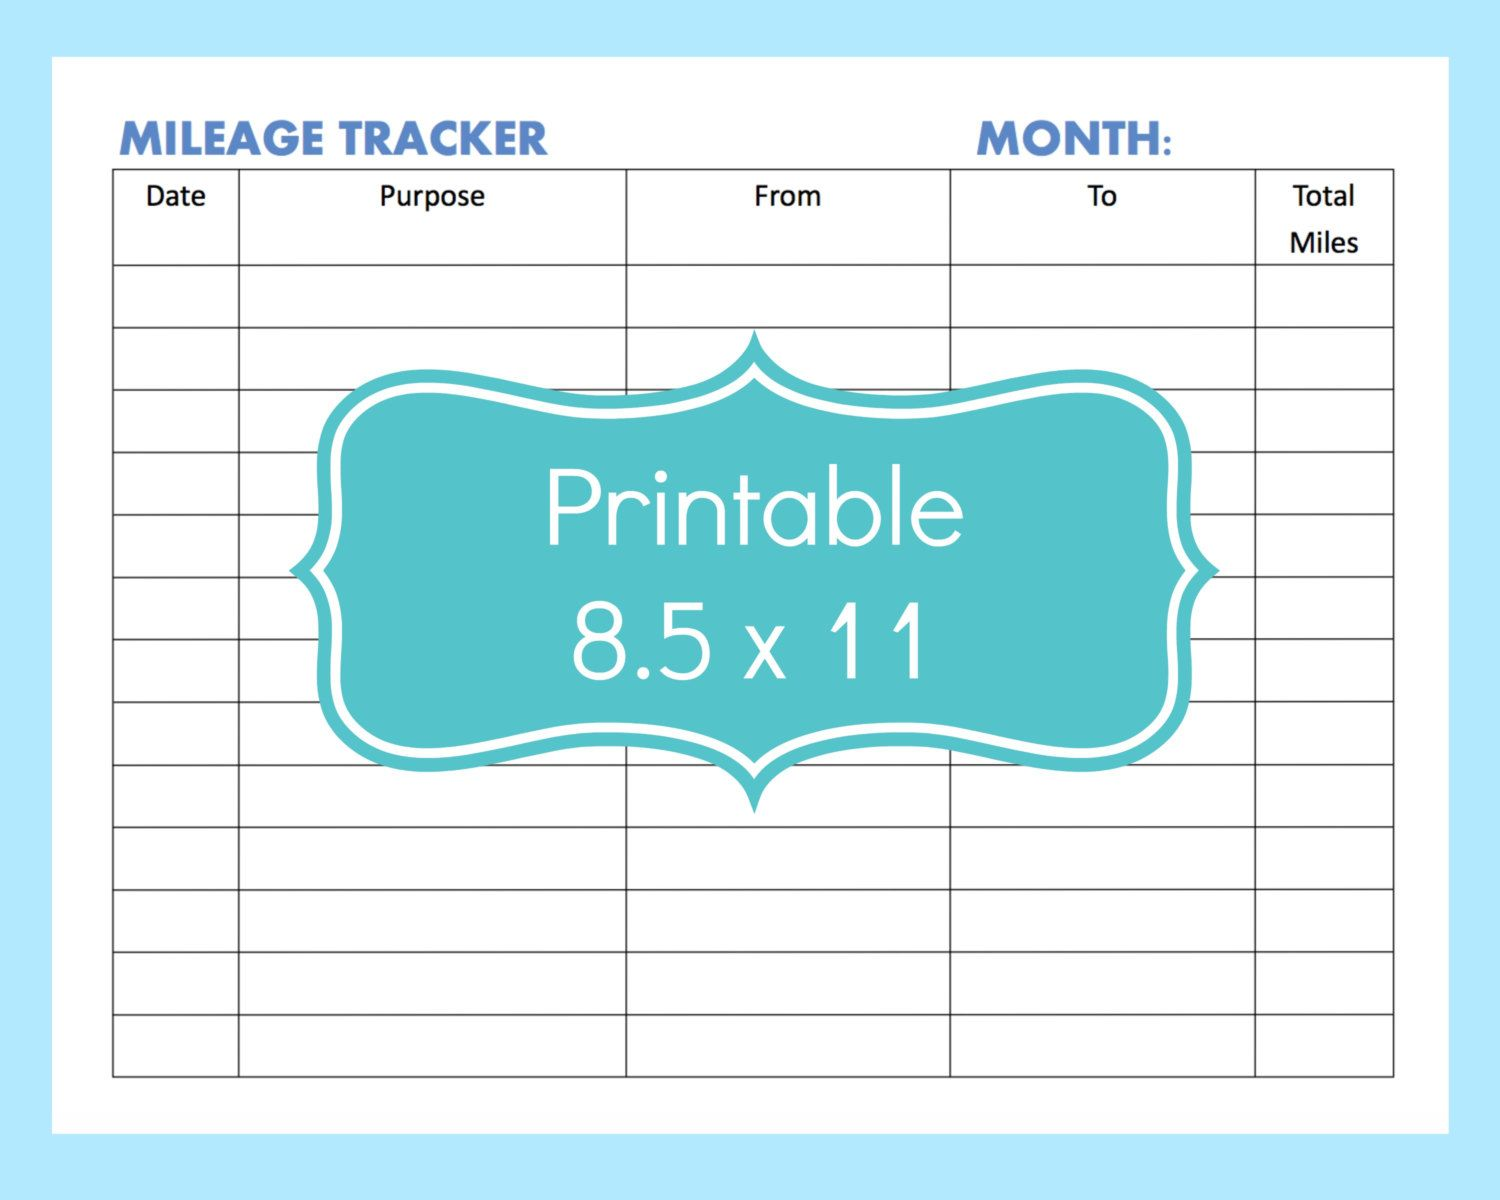 mileage tracker form printable printable mileage tracker mileage